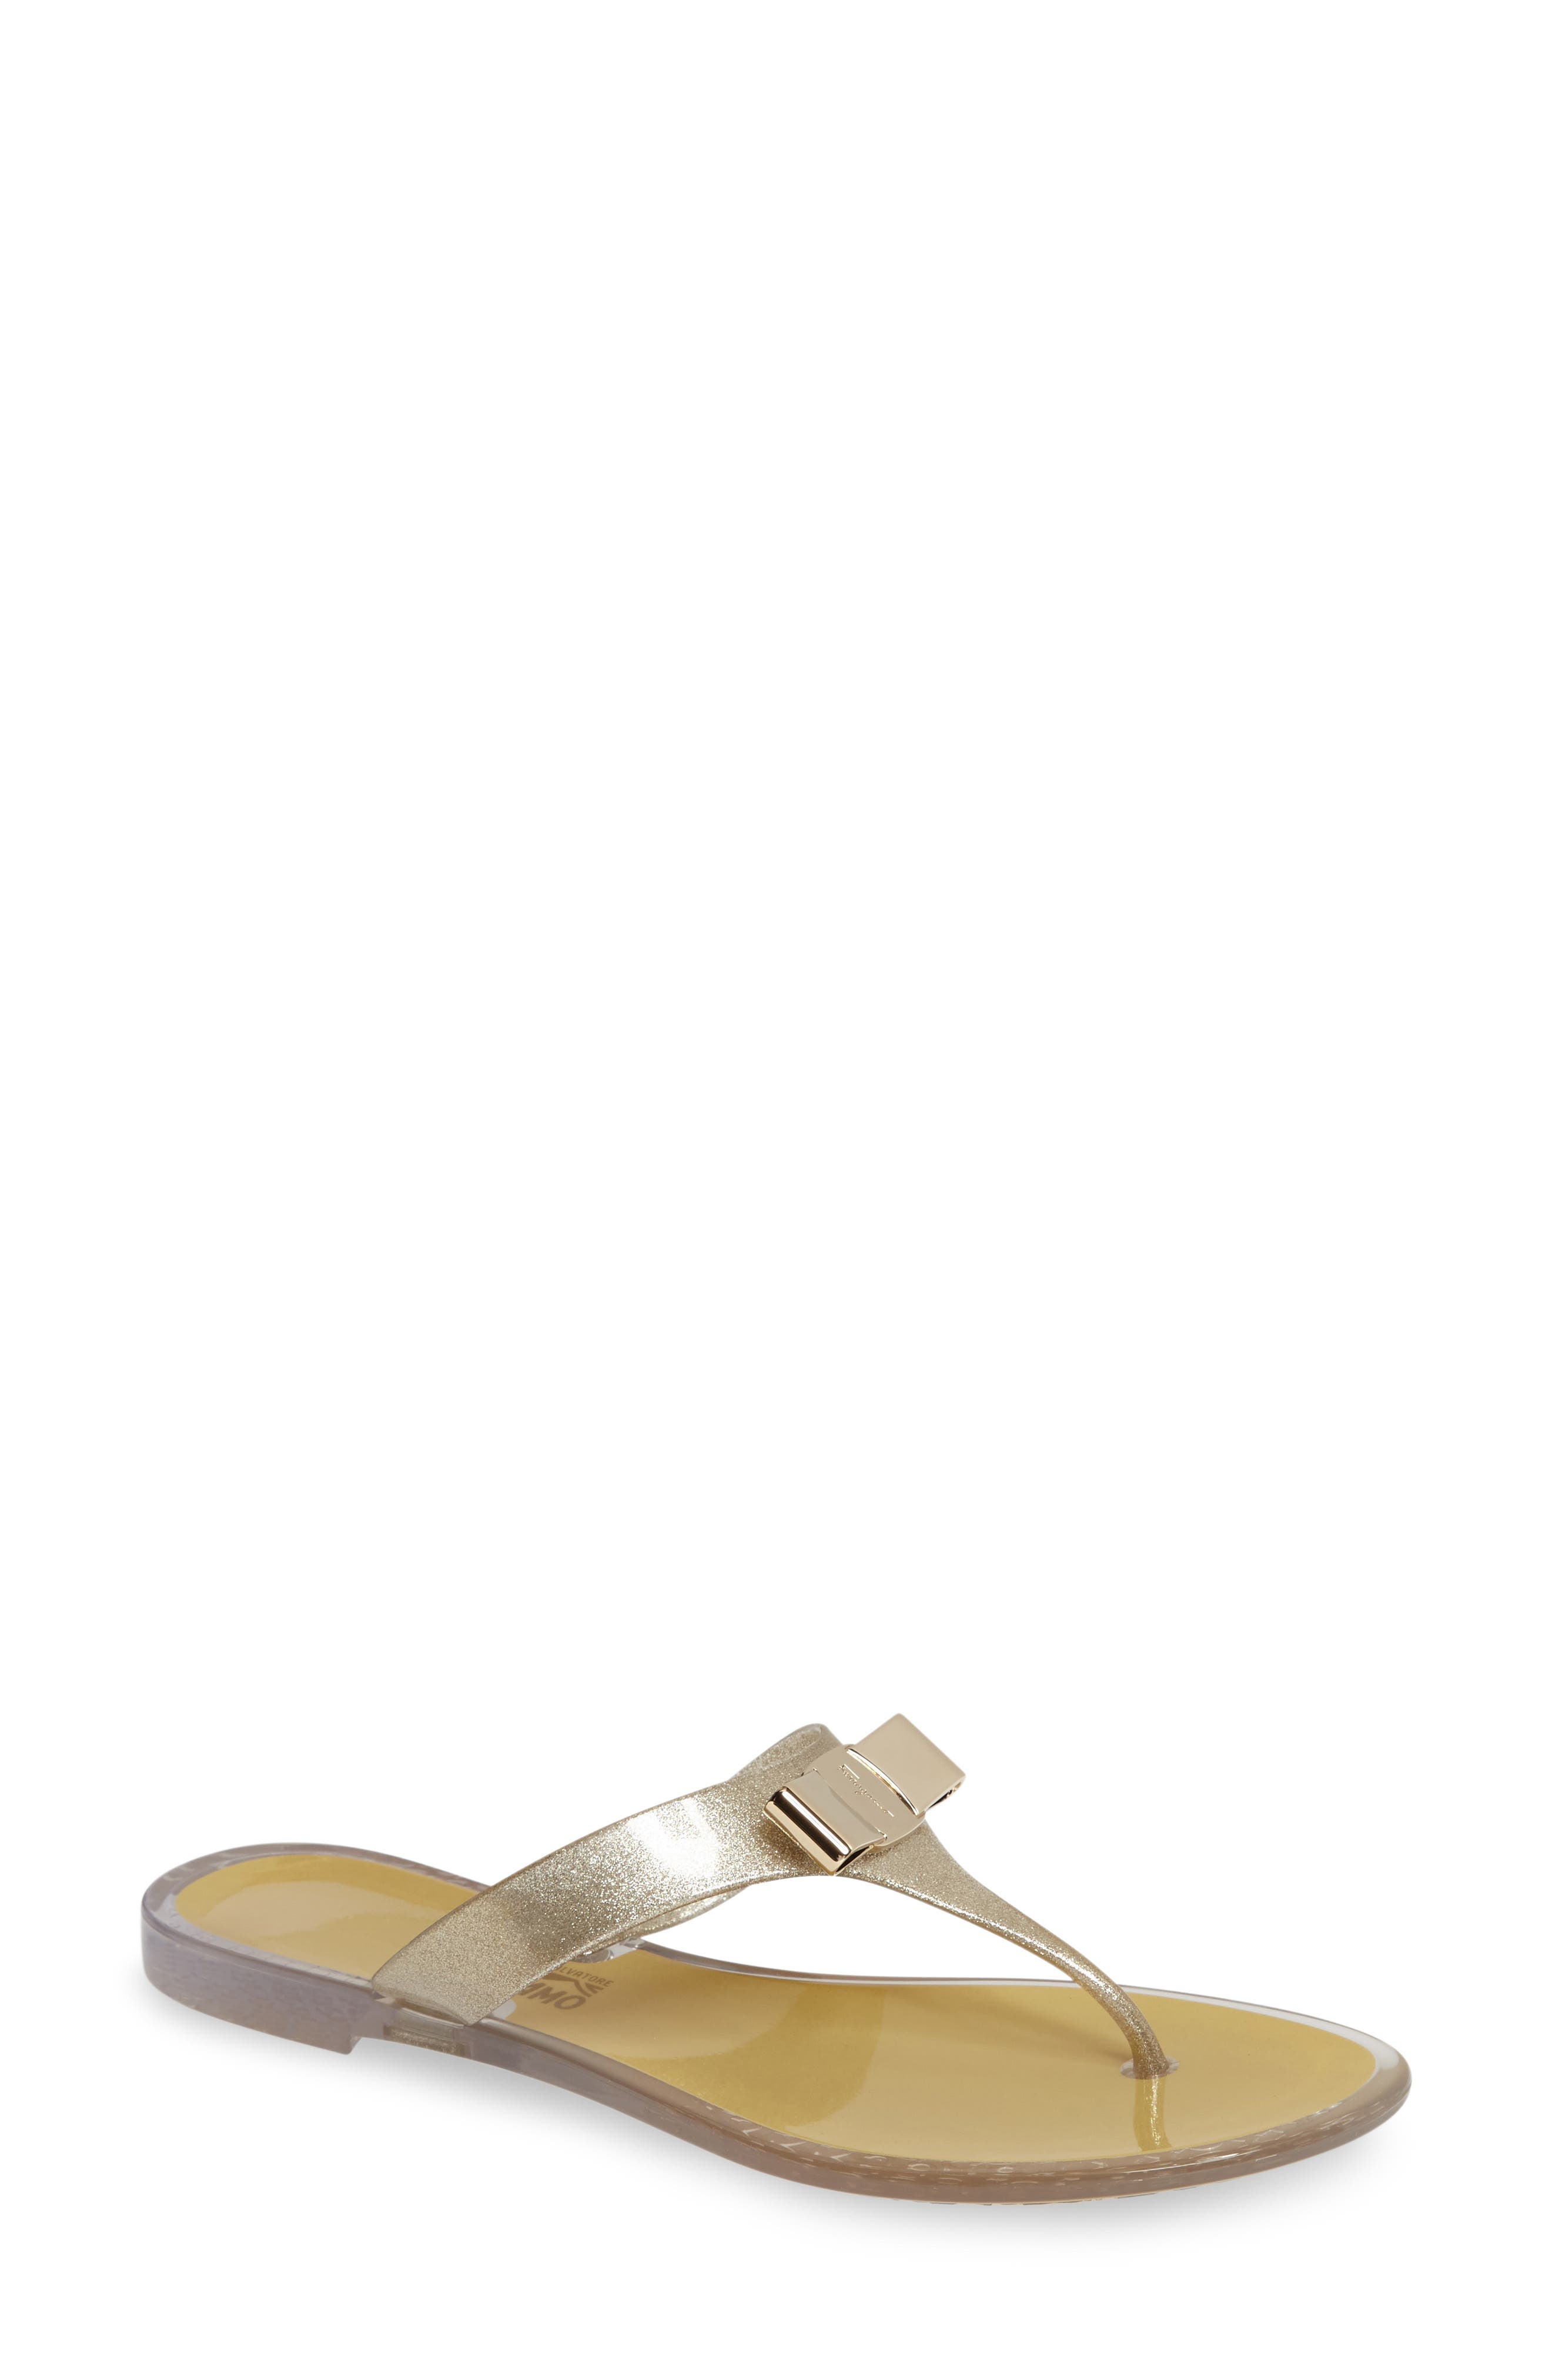 Jelly Flat Bow Sandal,                         Main,                         color, 250